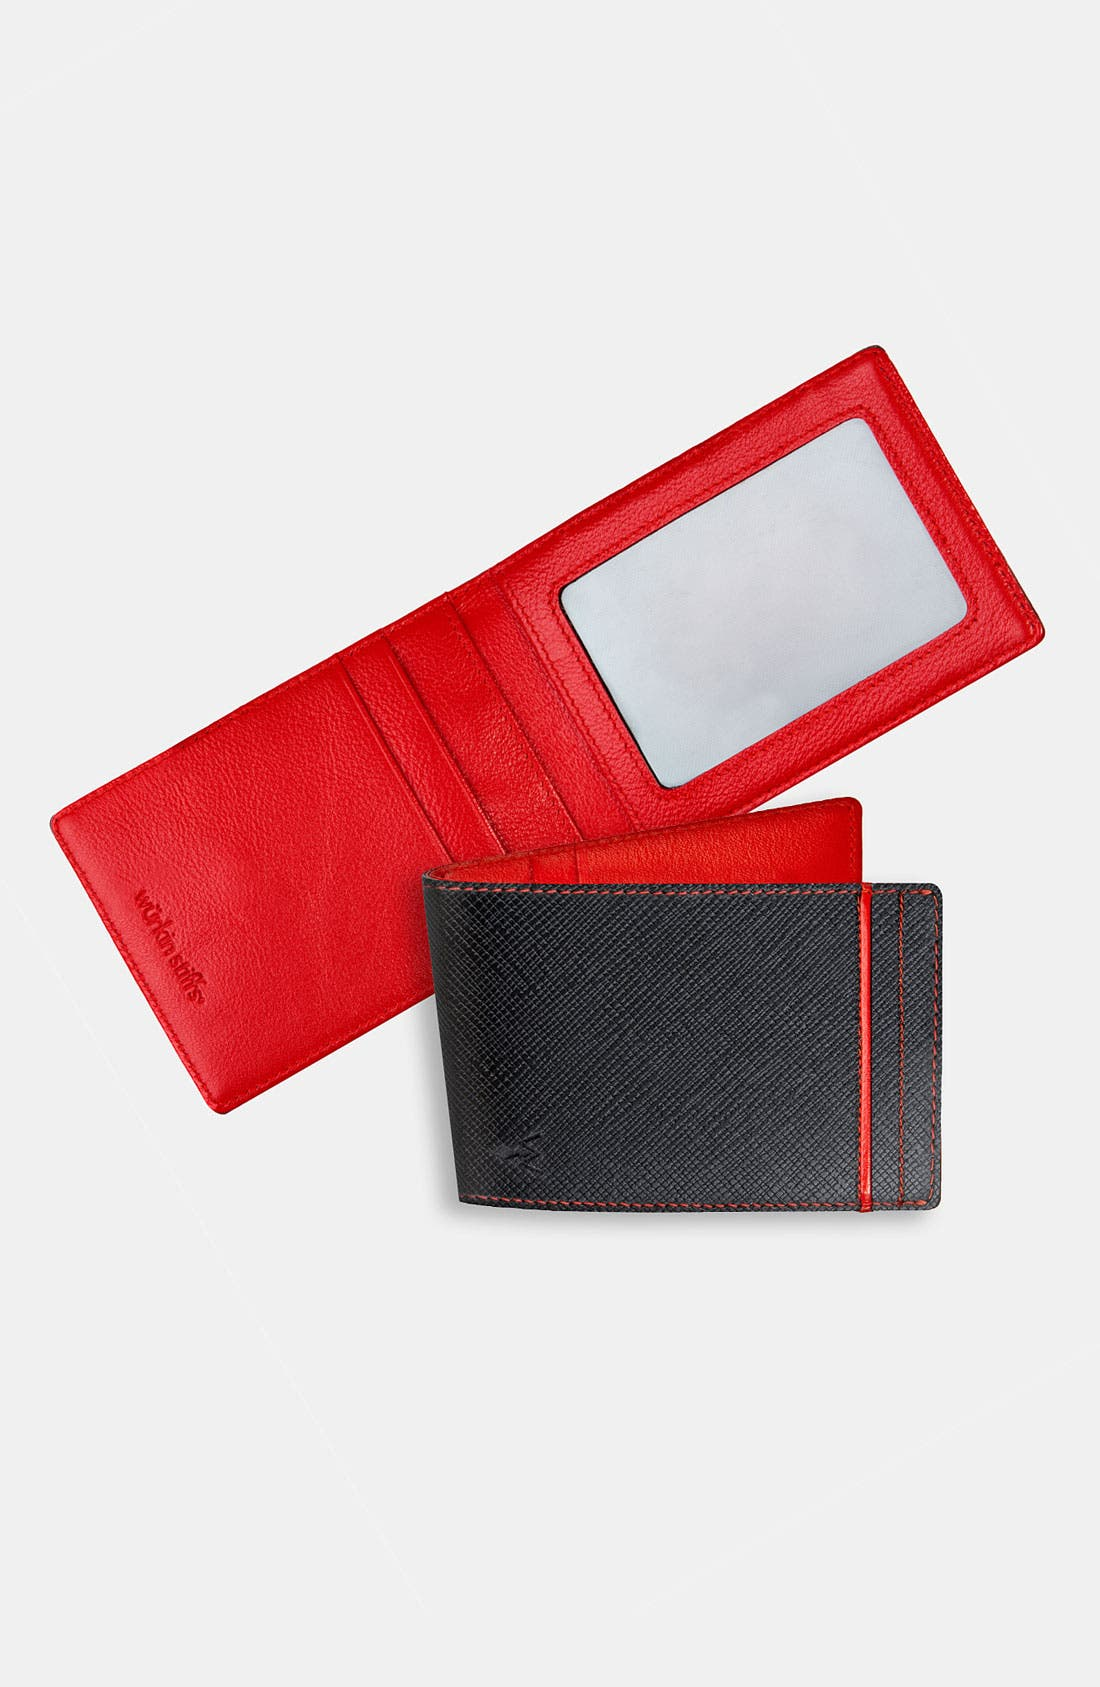 Main Image - Würkin Stiffs RFID Blocker Wallet